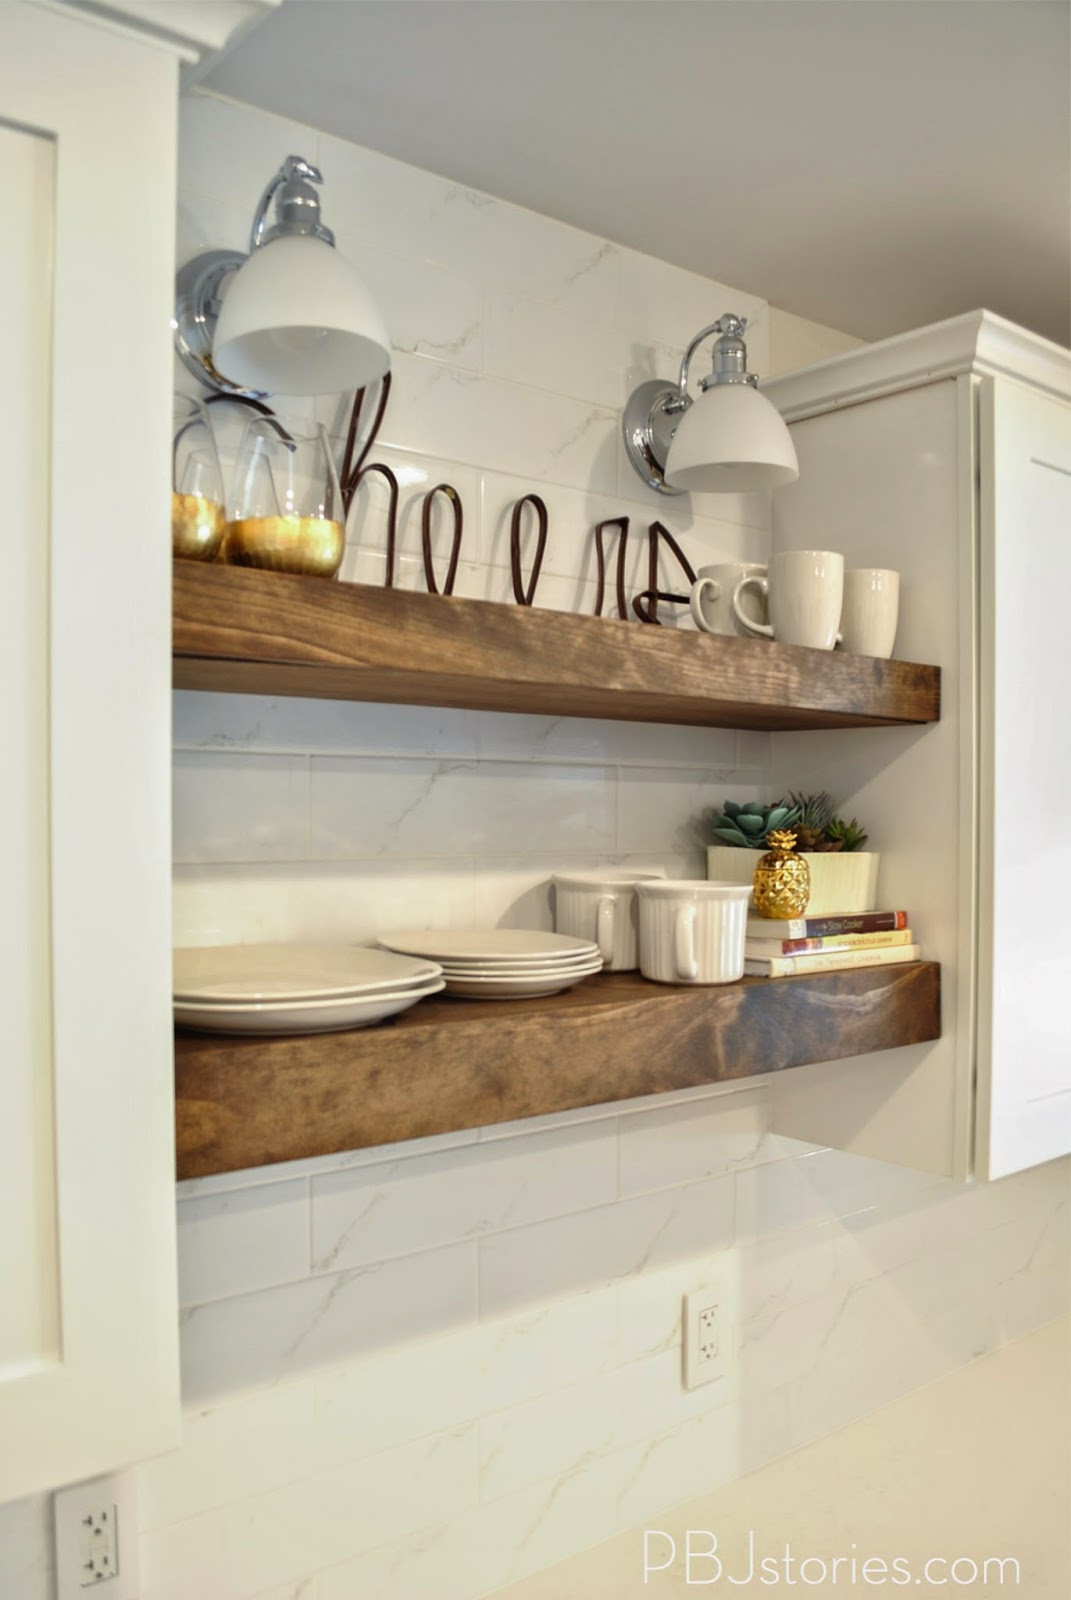 Best ideas about DIY Kitchen Shelving Ideas . Save or Pin PBJstories Our DIY Open Kitchen Shelves Now.